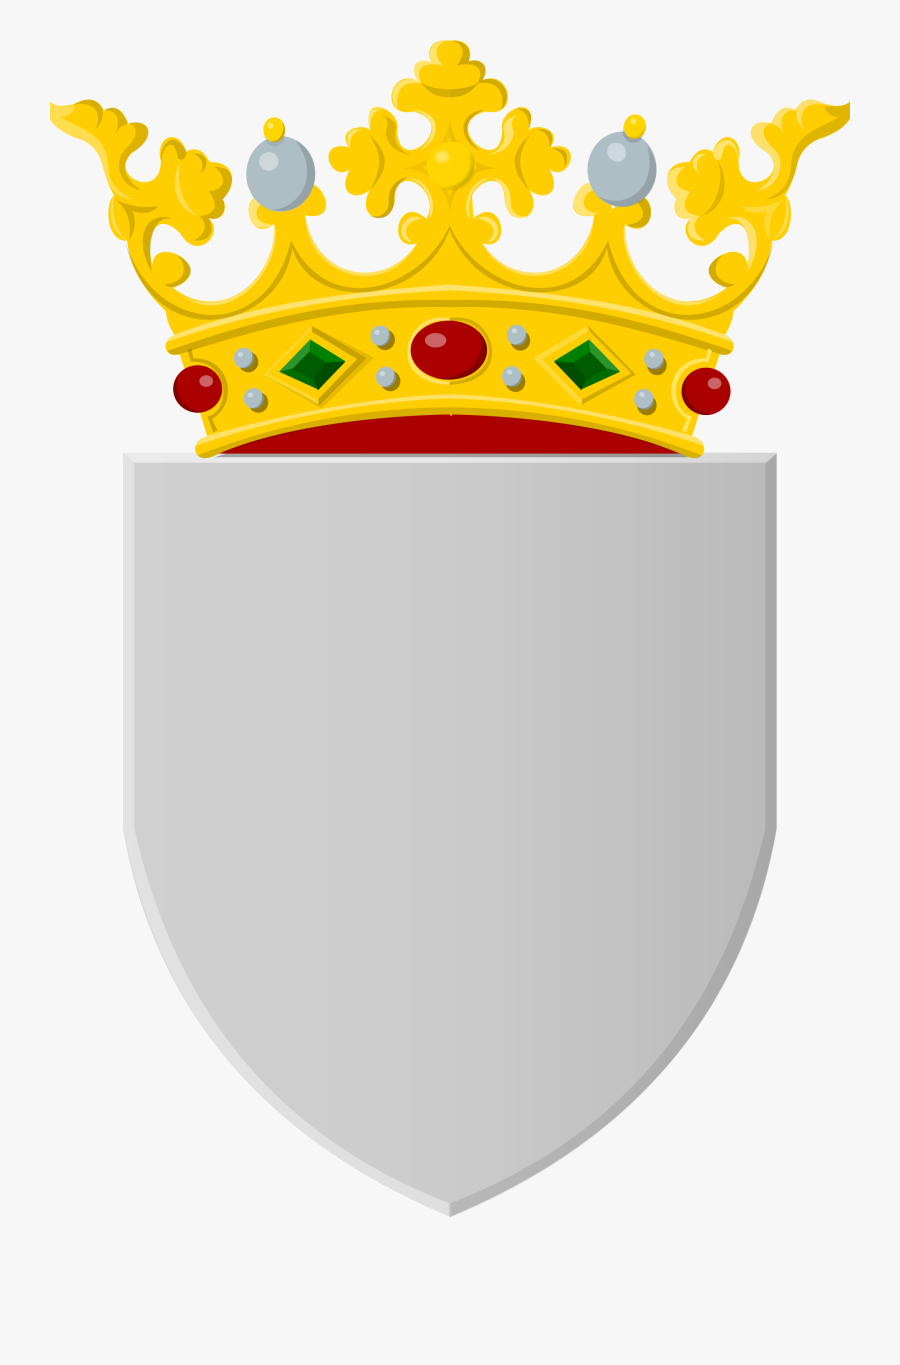 Silver Shield With Golden Crown - Crown Shield, Transparent Clipart